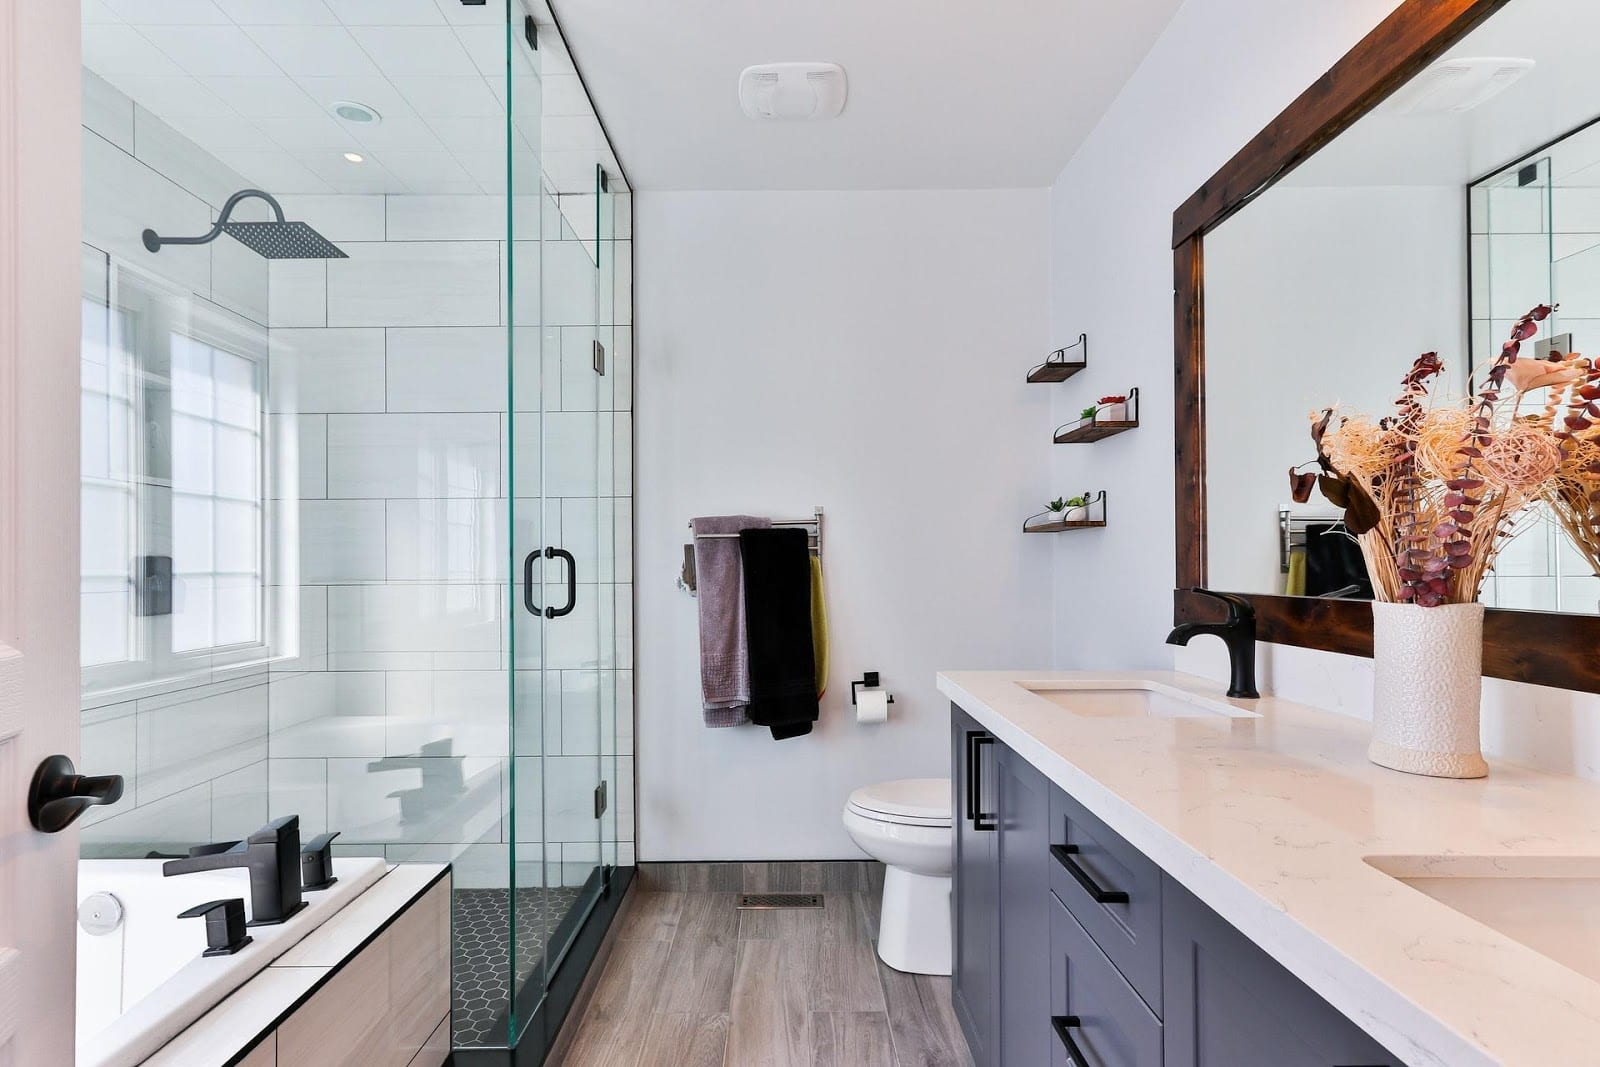 How Much Should You Invest in Your Bathroom Vanity?